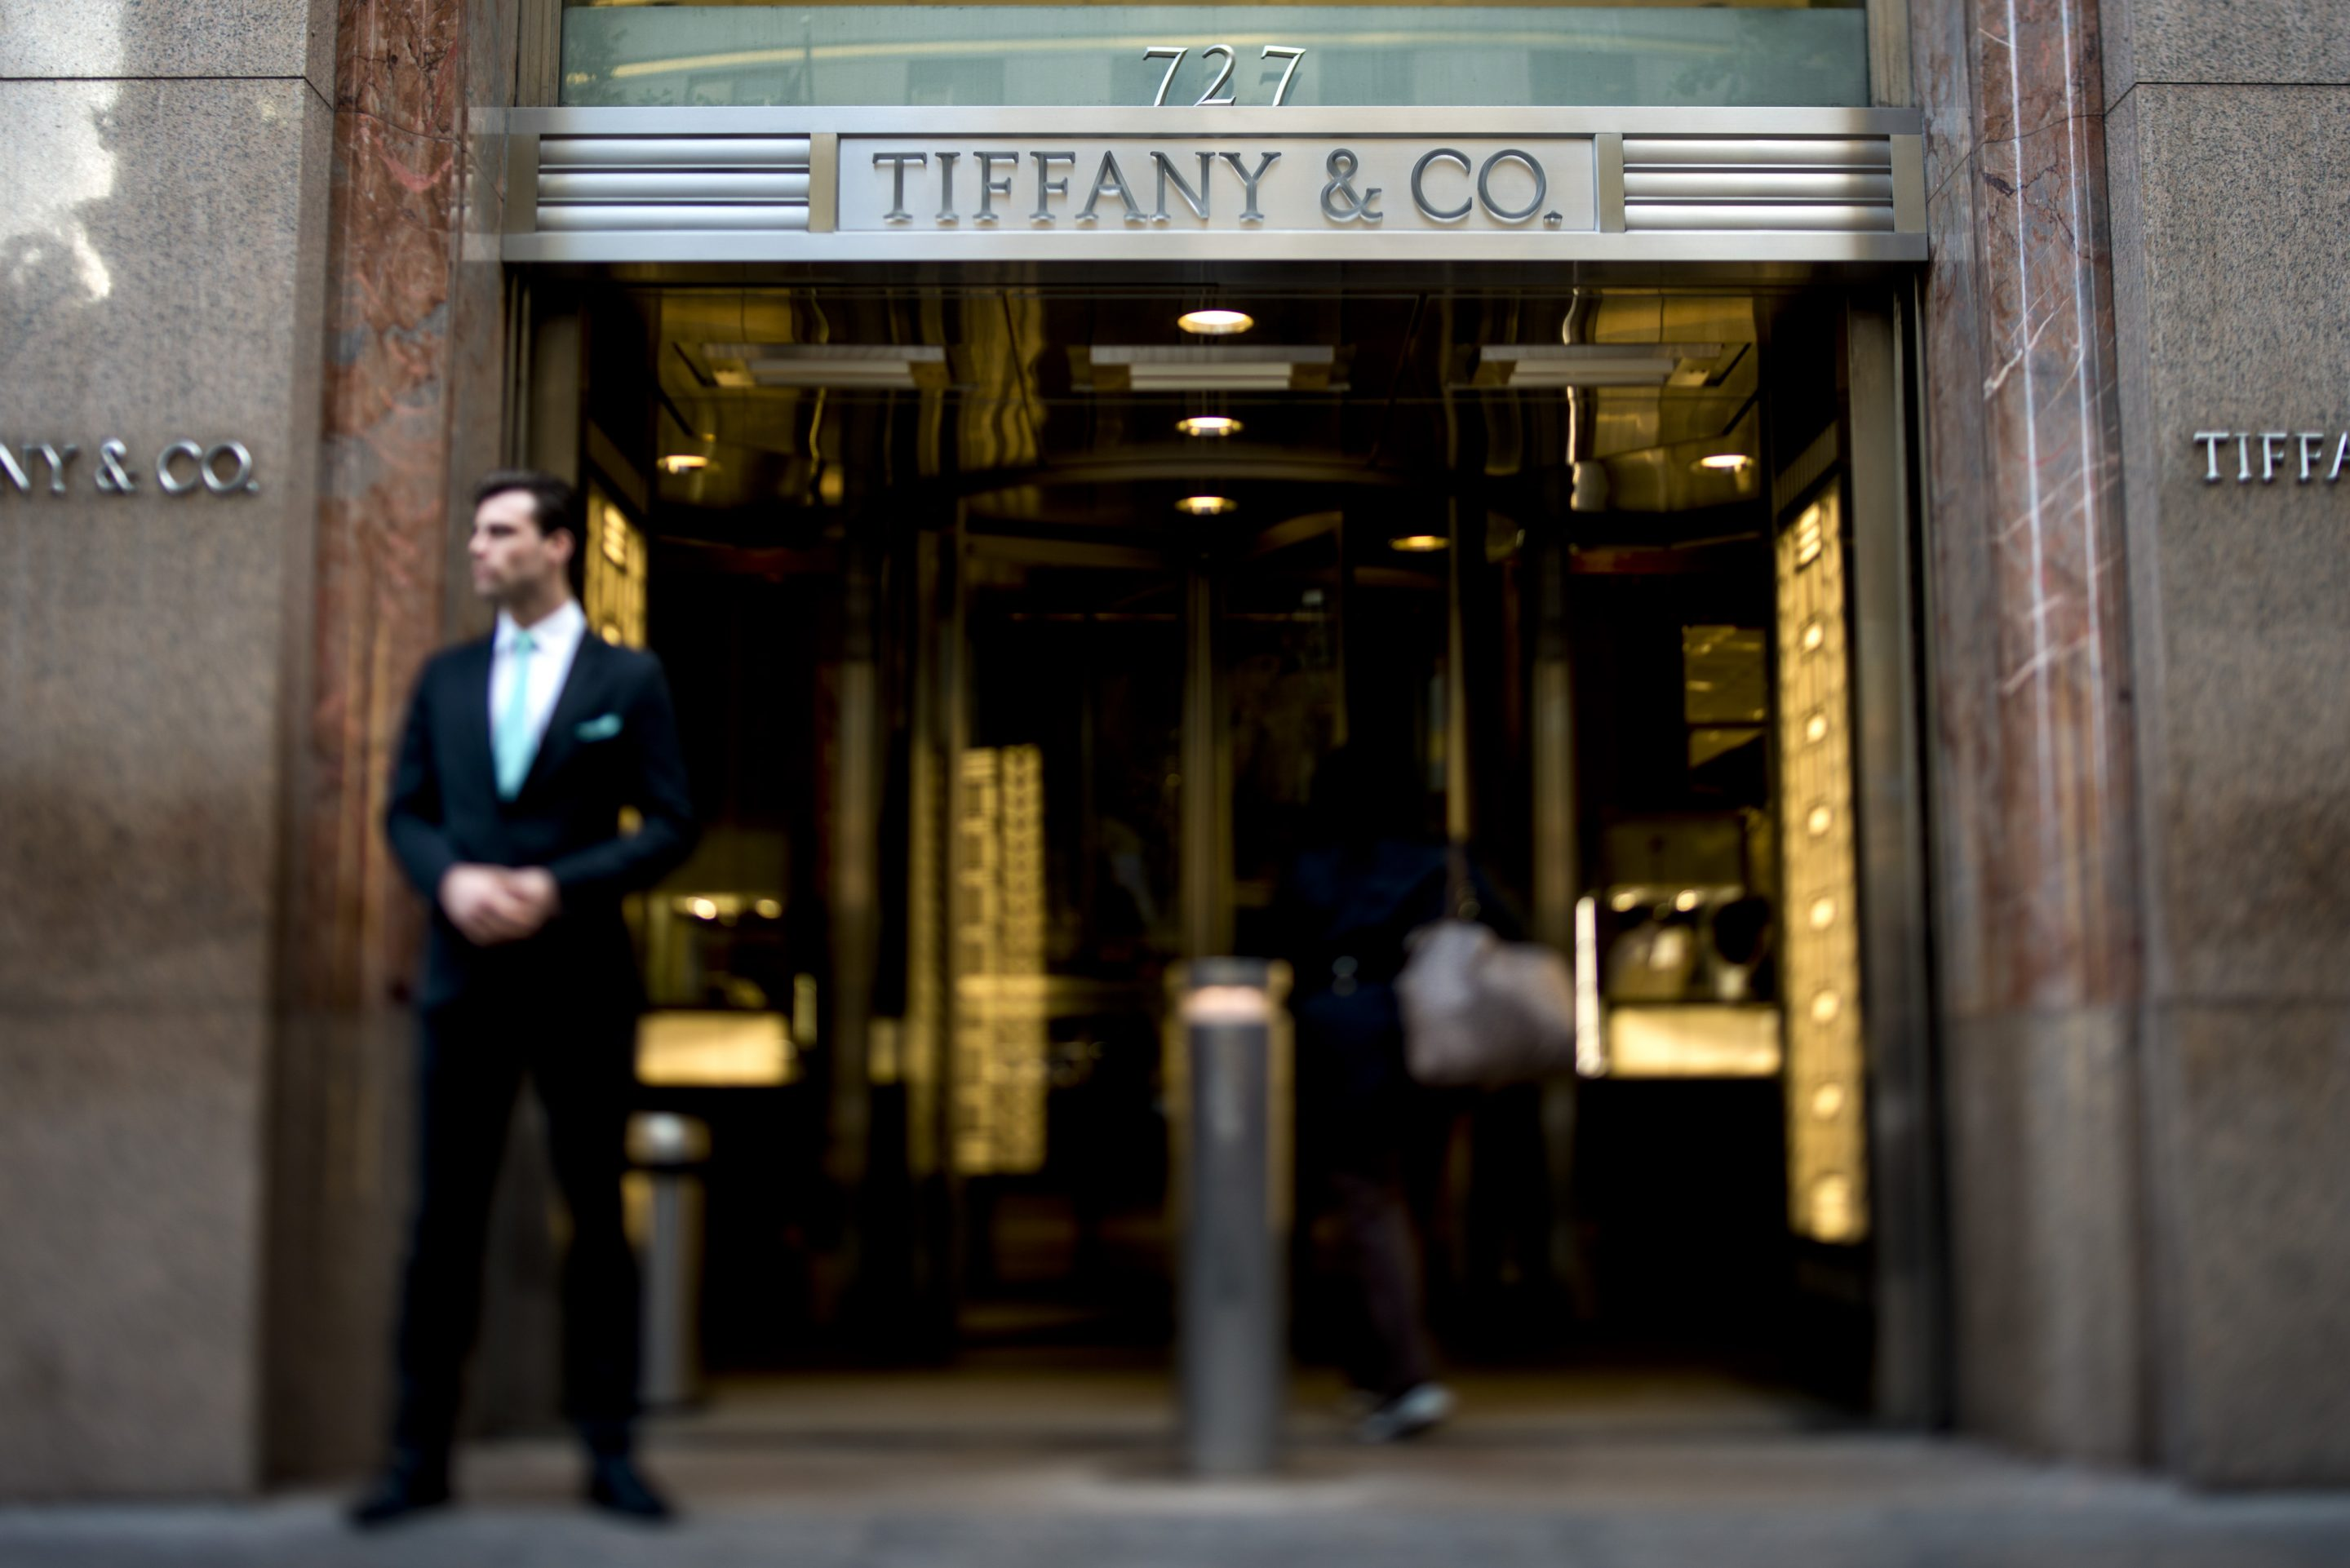 Tiffany & Co.'s flagship store in New York City. This fall, the venerable luxury jewelry launches a new men's collection.